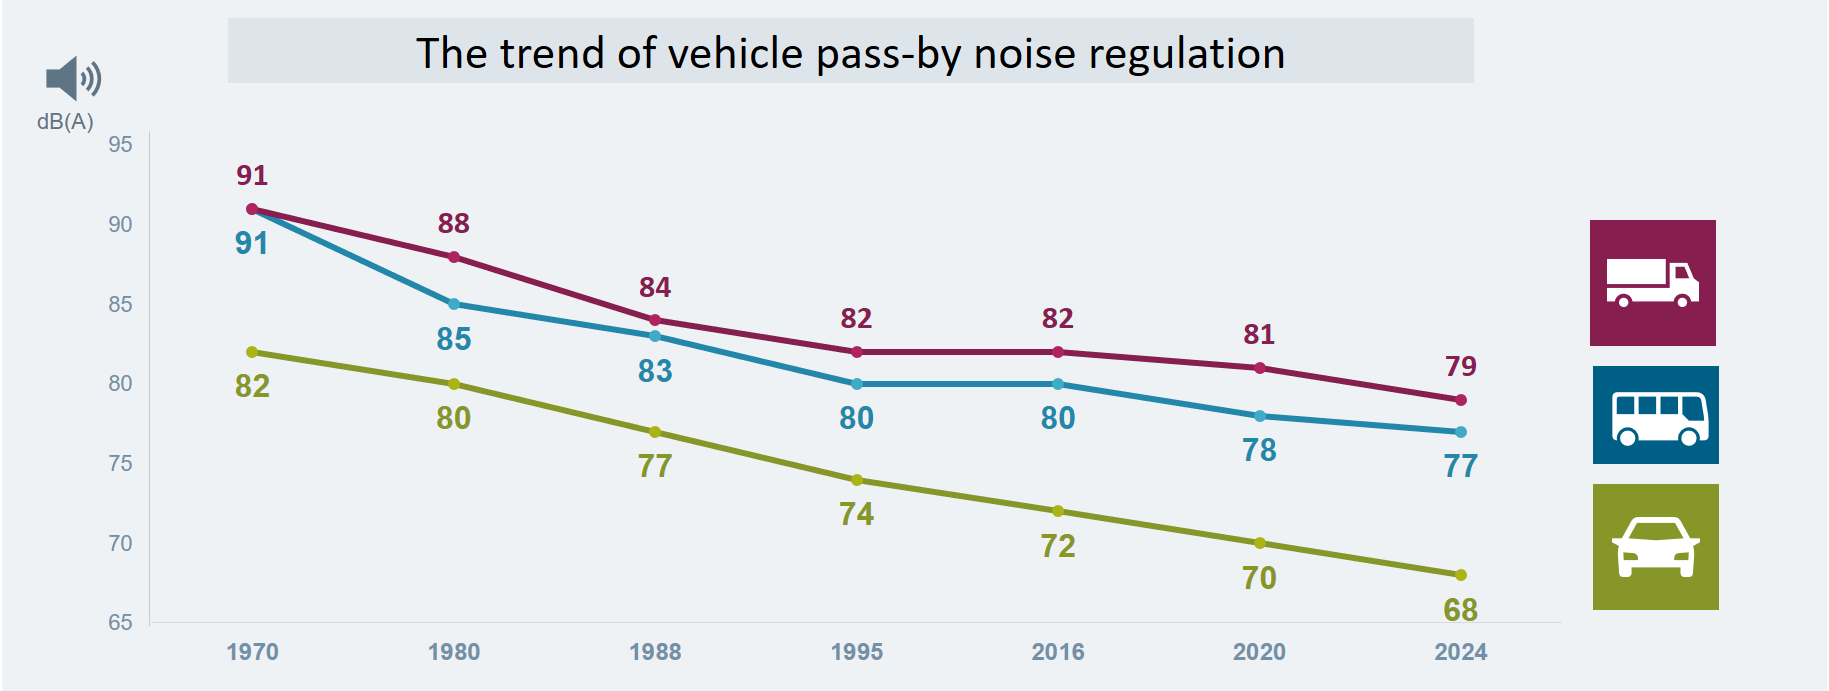 Trend of pass-by noise regulation